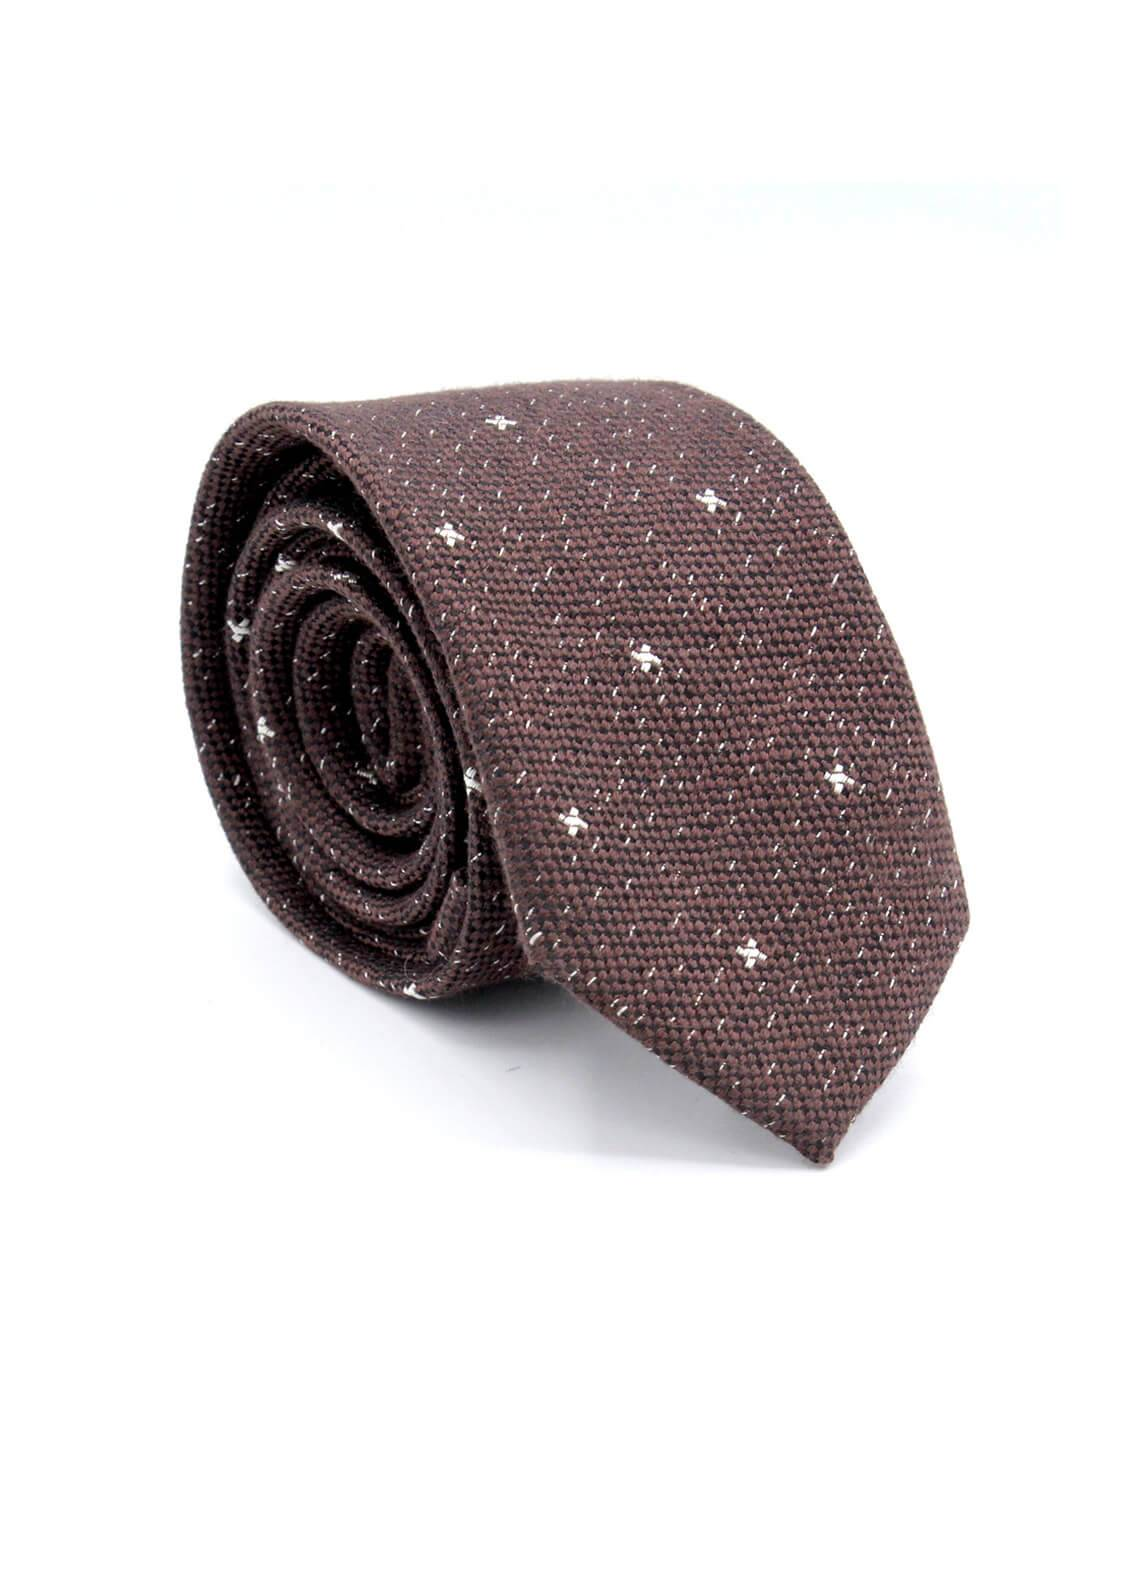 Skangen Narrow Wool Neck Tie Neck Tie SKTI-W-004 -